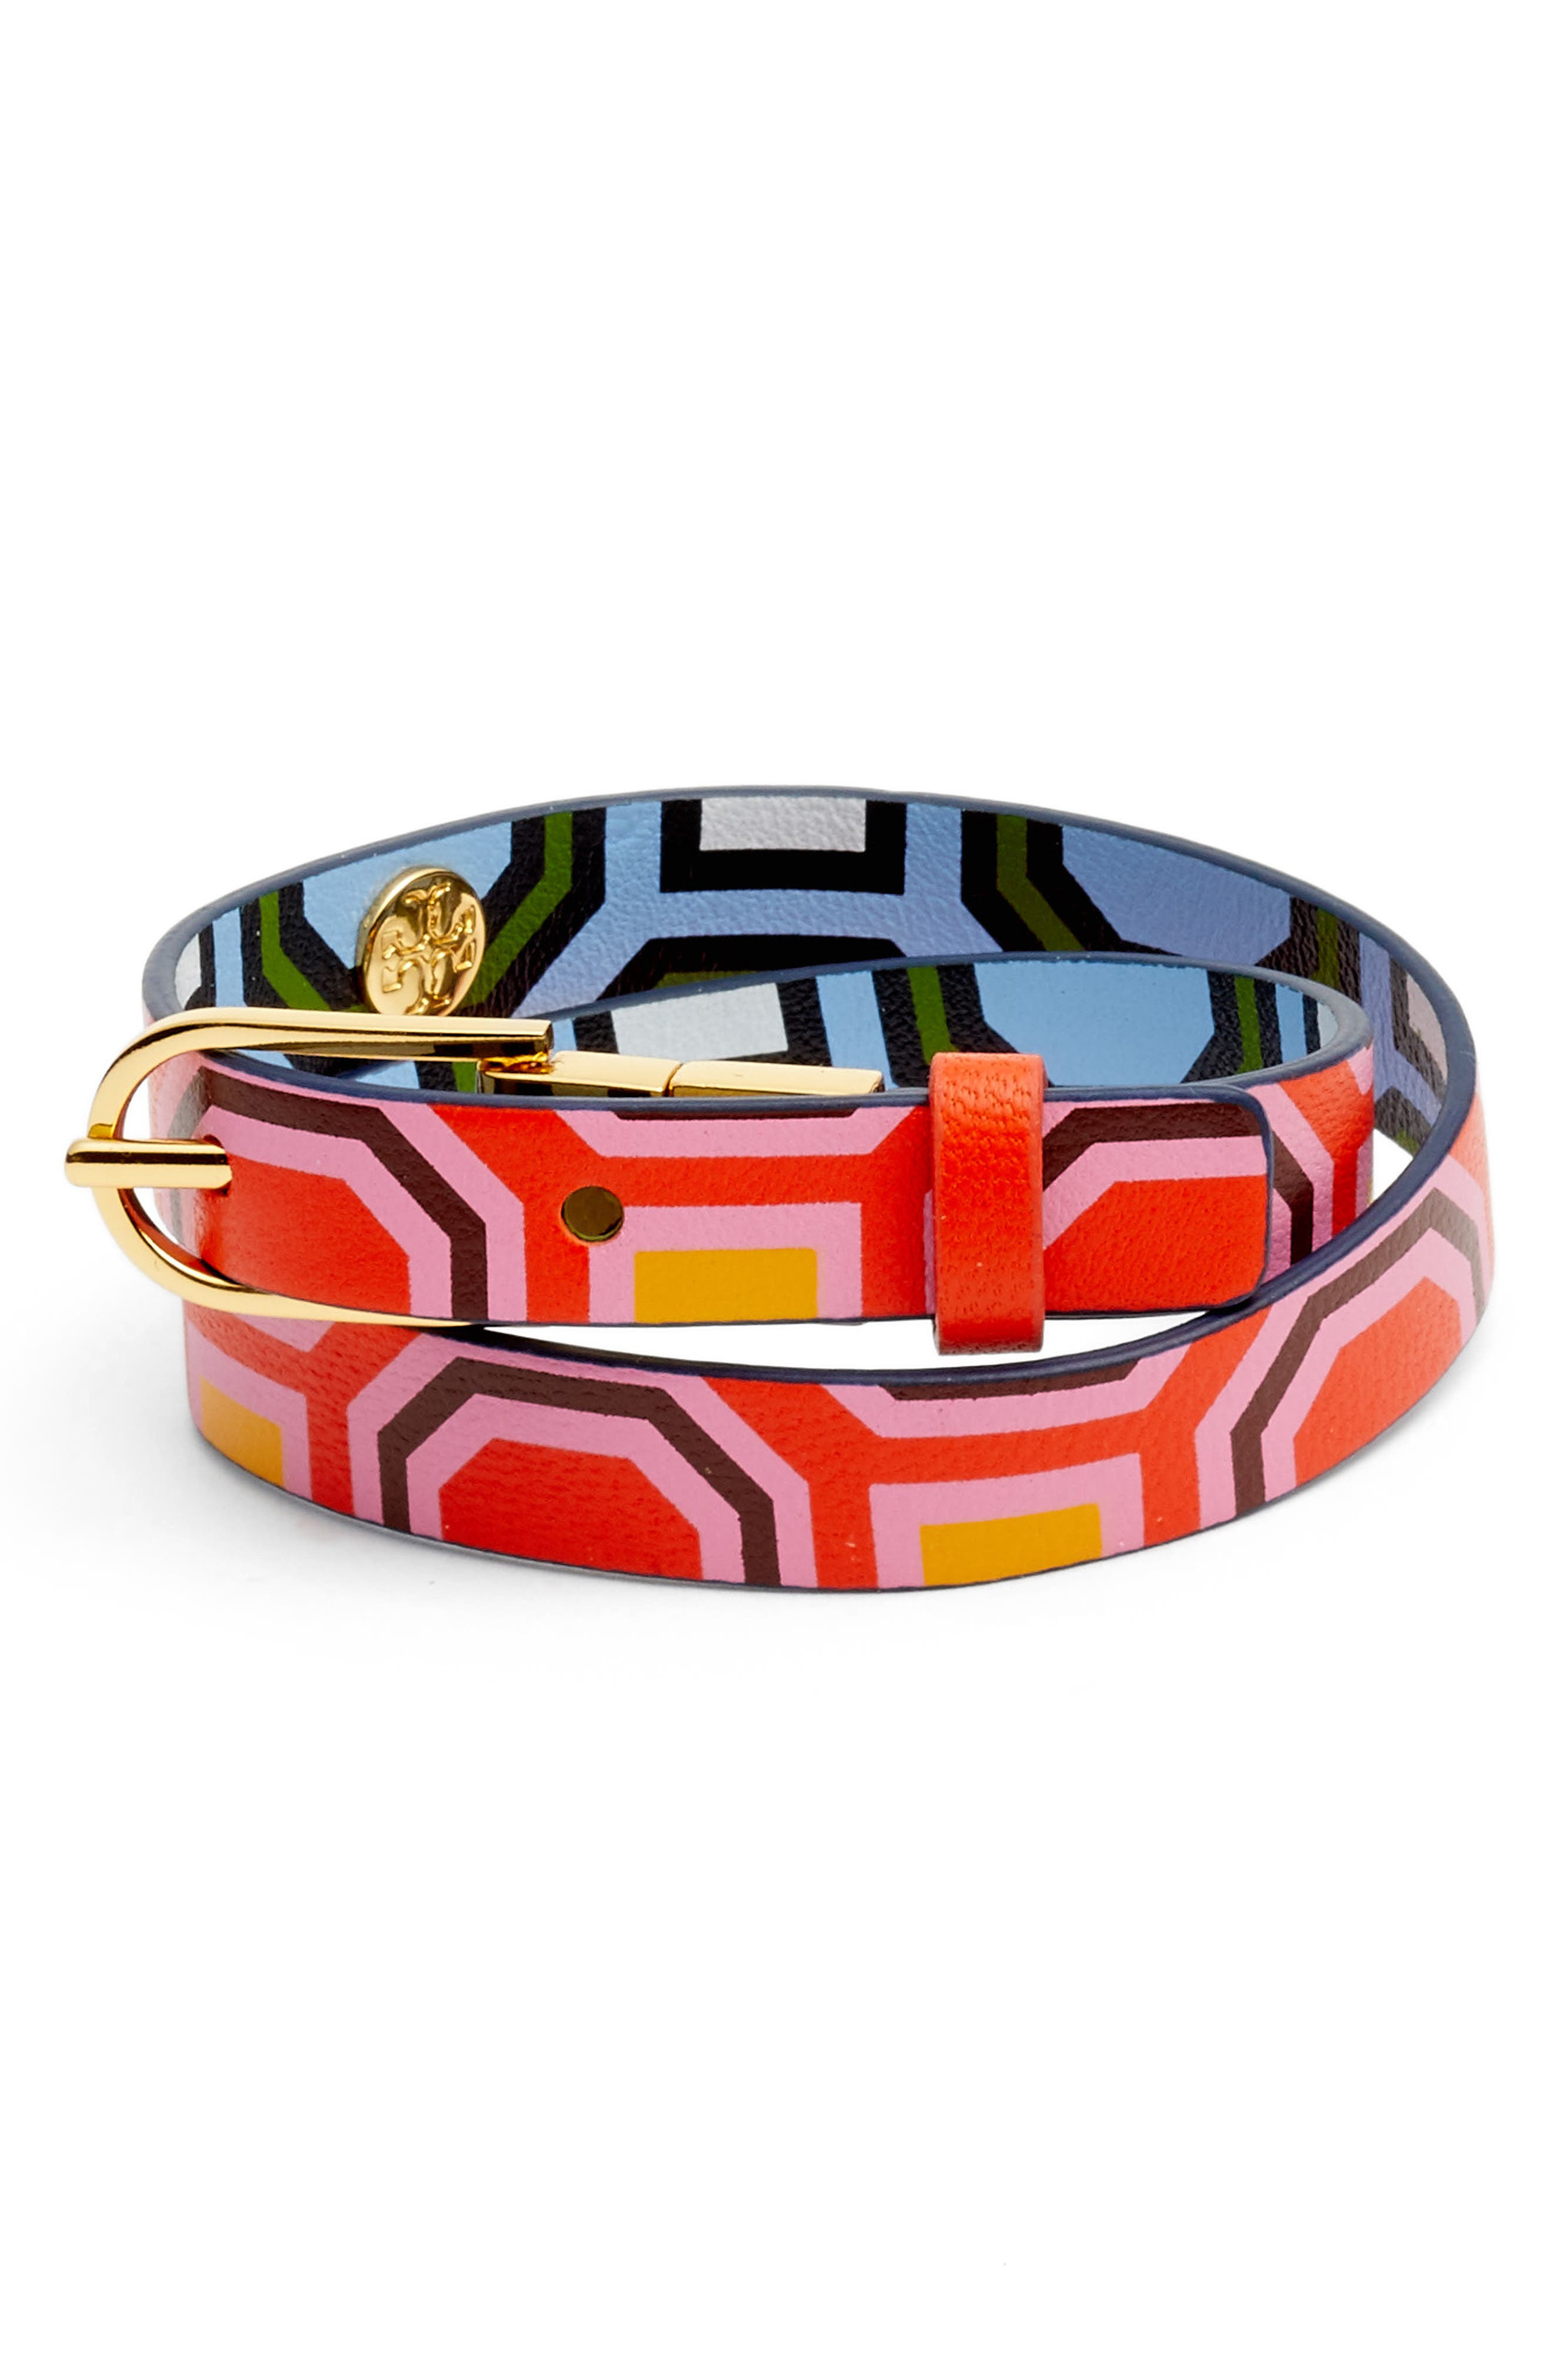 Reversible Leather Double Wrap Bracelet,                             Main thumbnail 1, color,                             438